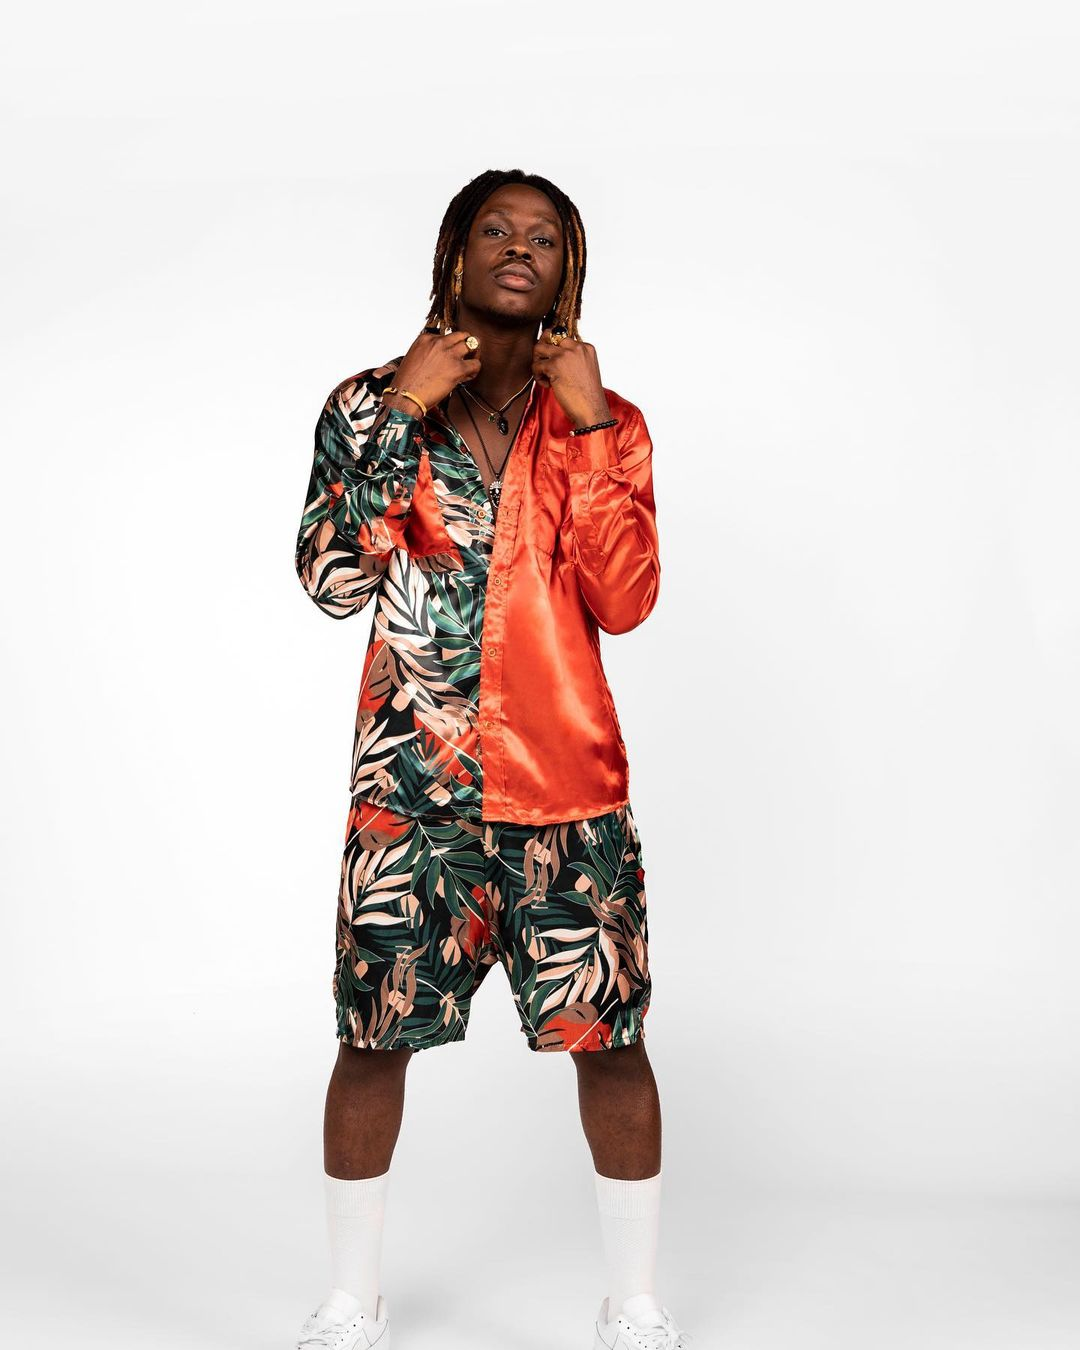 Fireboy DML and BoohooMAN collectiont